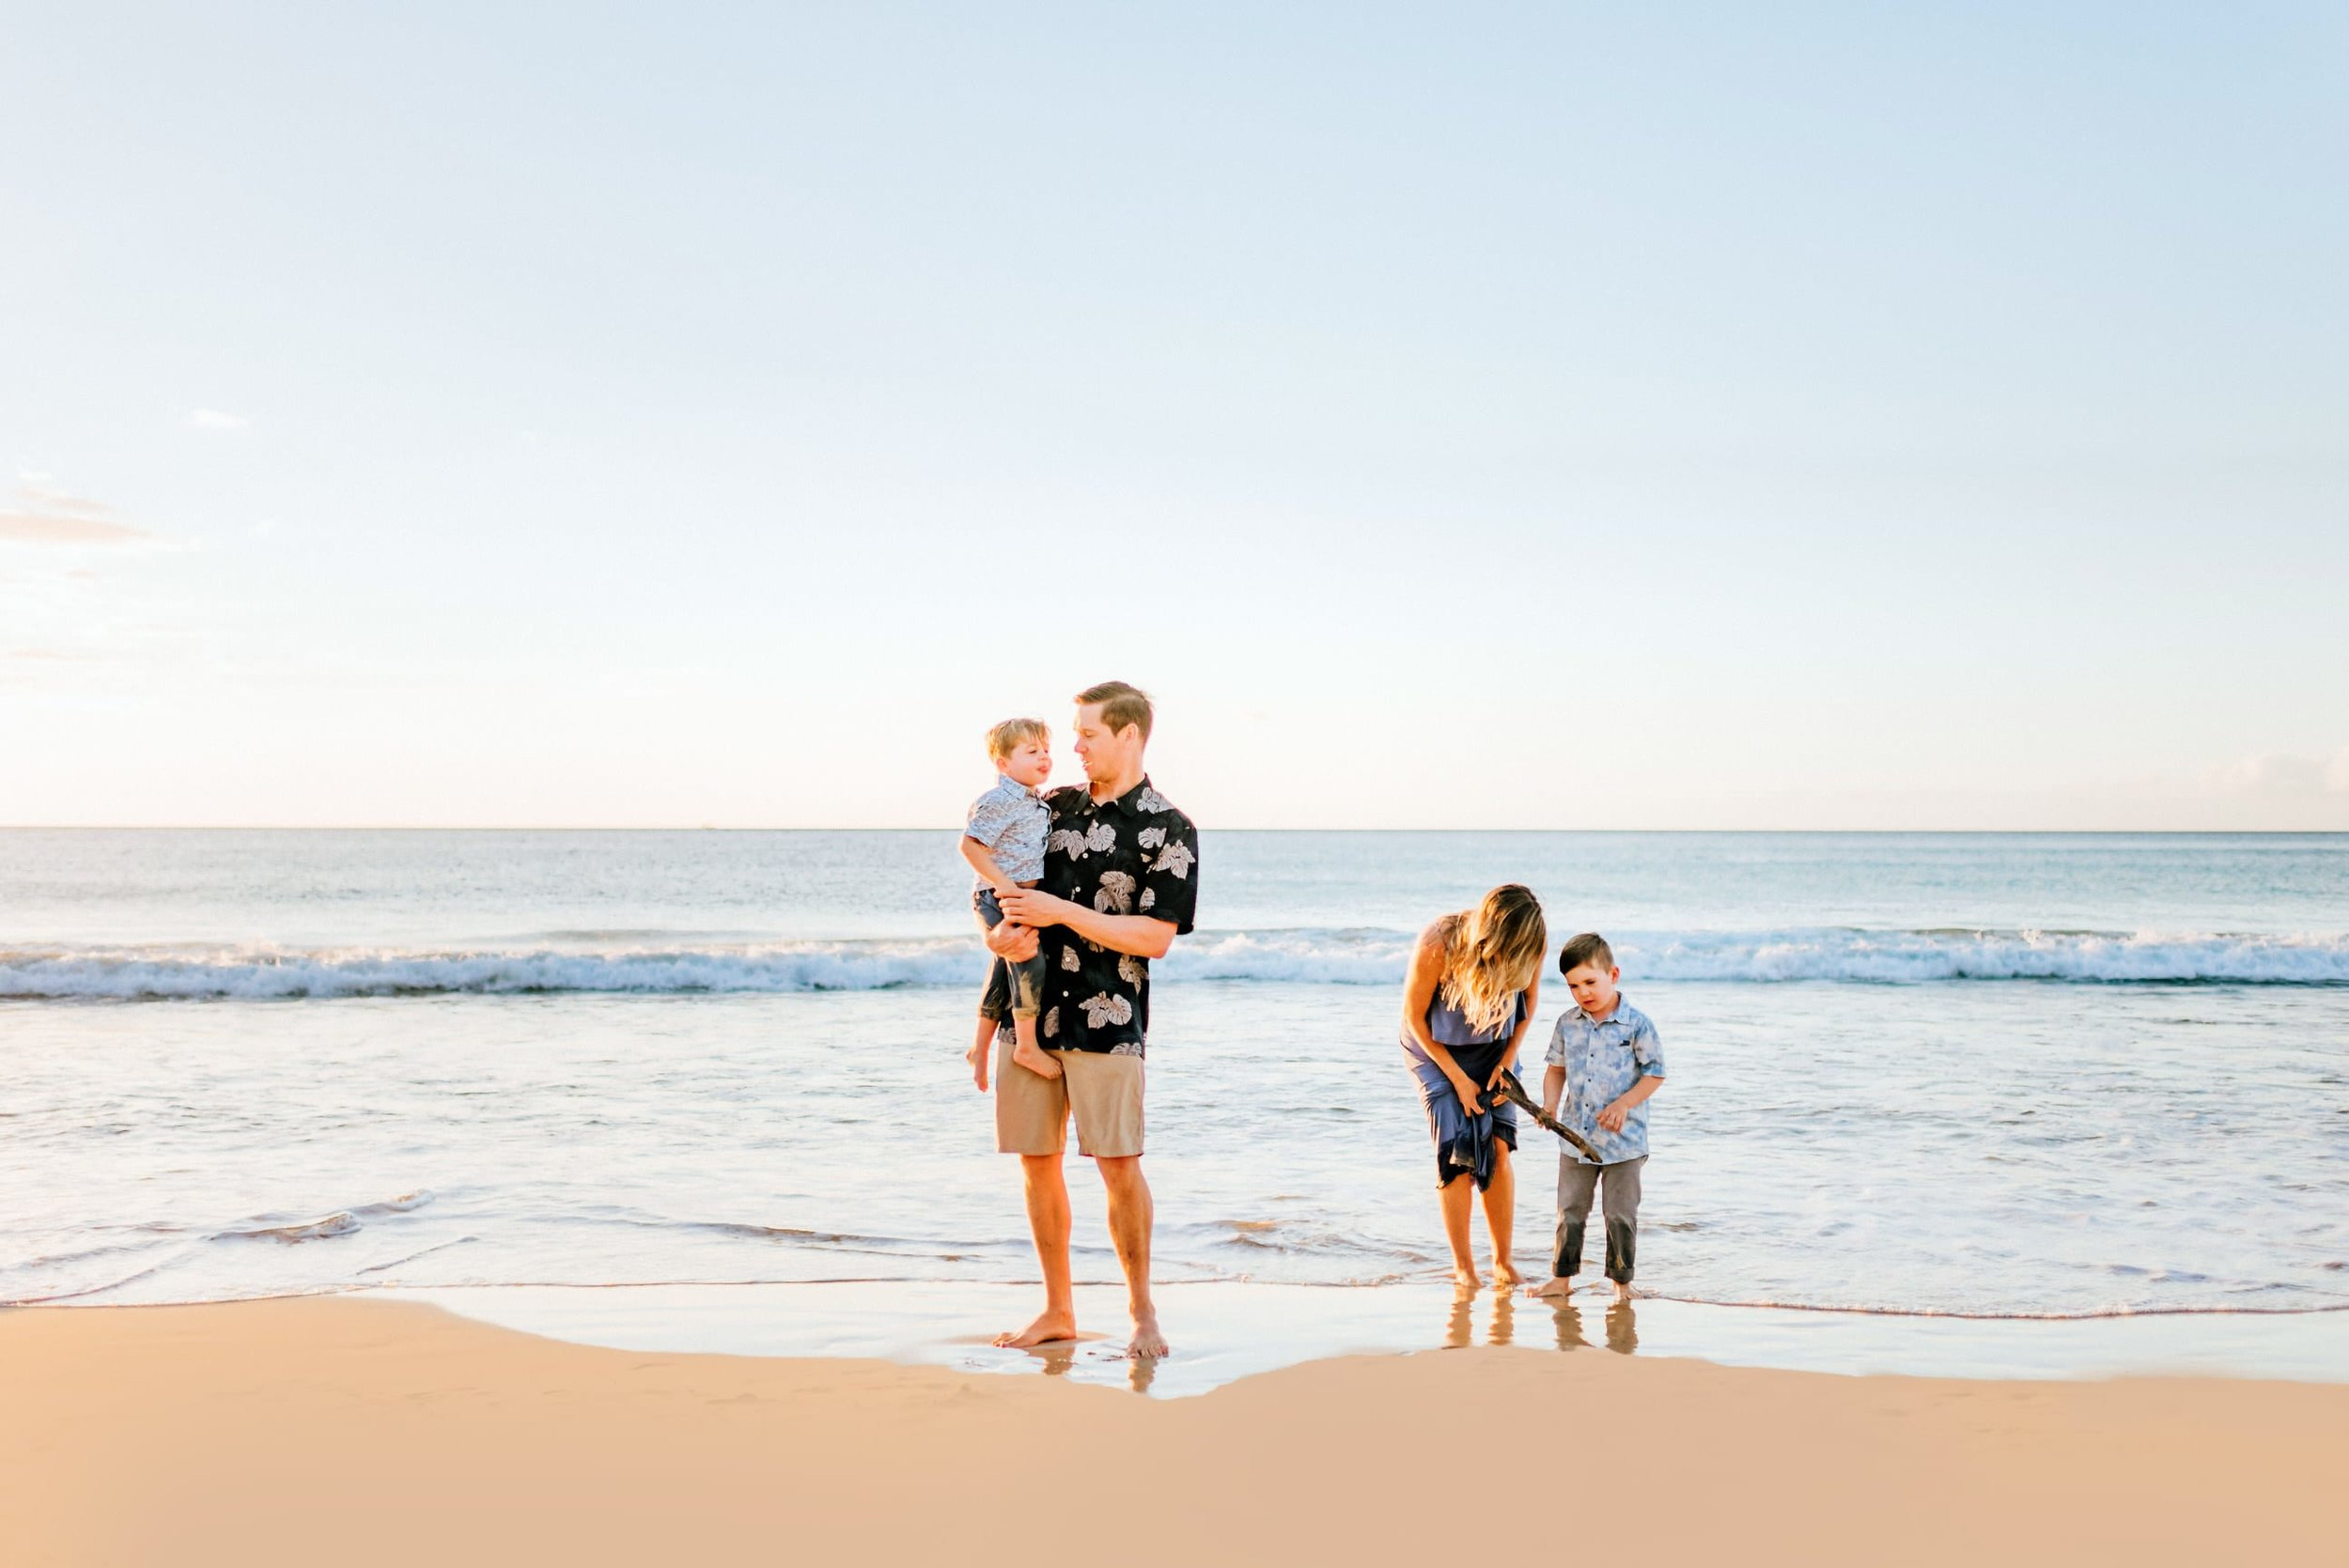 Mauna-Kea-Beach-Family-Photographer-Hawaii62-1.jpg